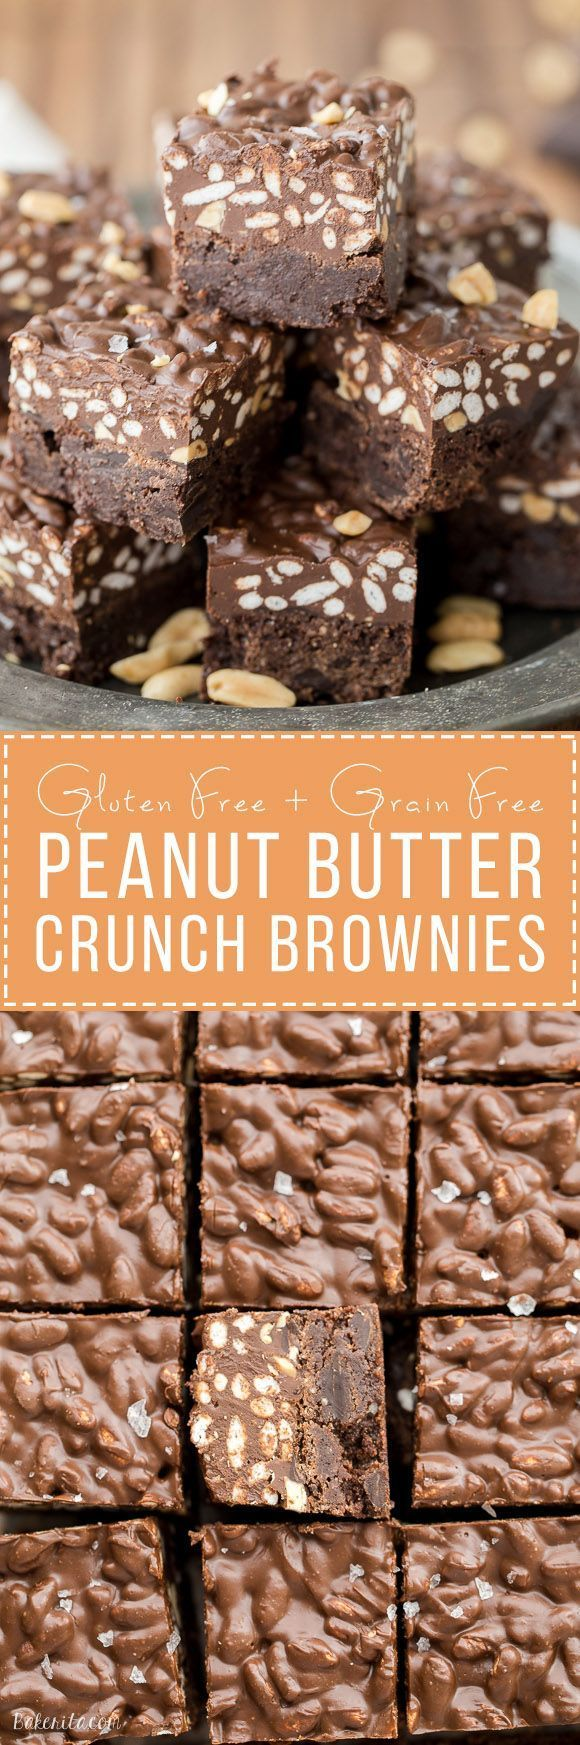 These Peanut Butter Crunch Brownies are incredibly rich and delicious, with a crunchy and fudgy topping. These gluten-free brownies were made for chocolate and peanut butter lovers!